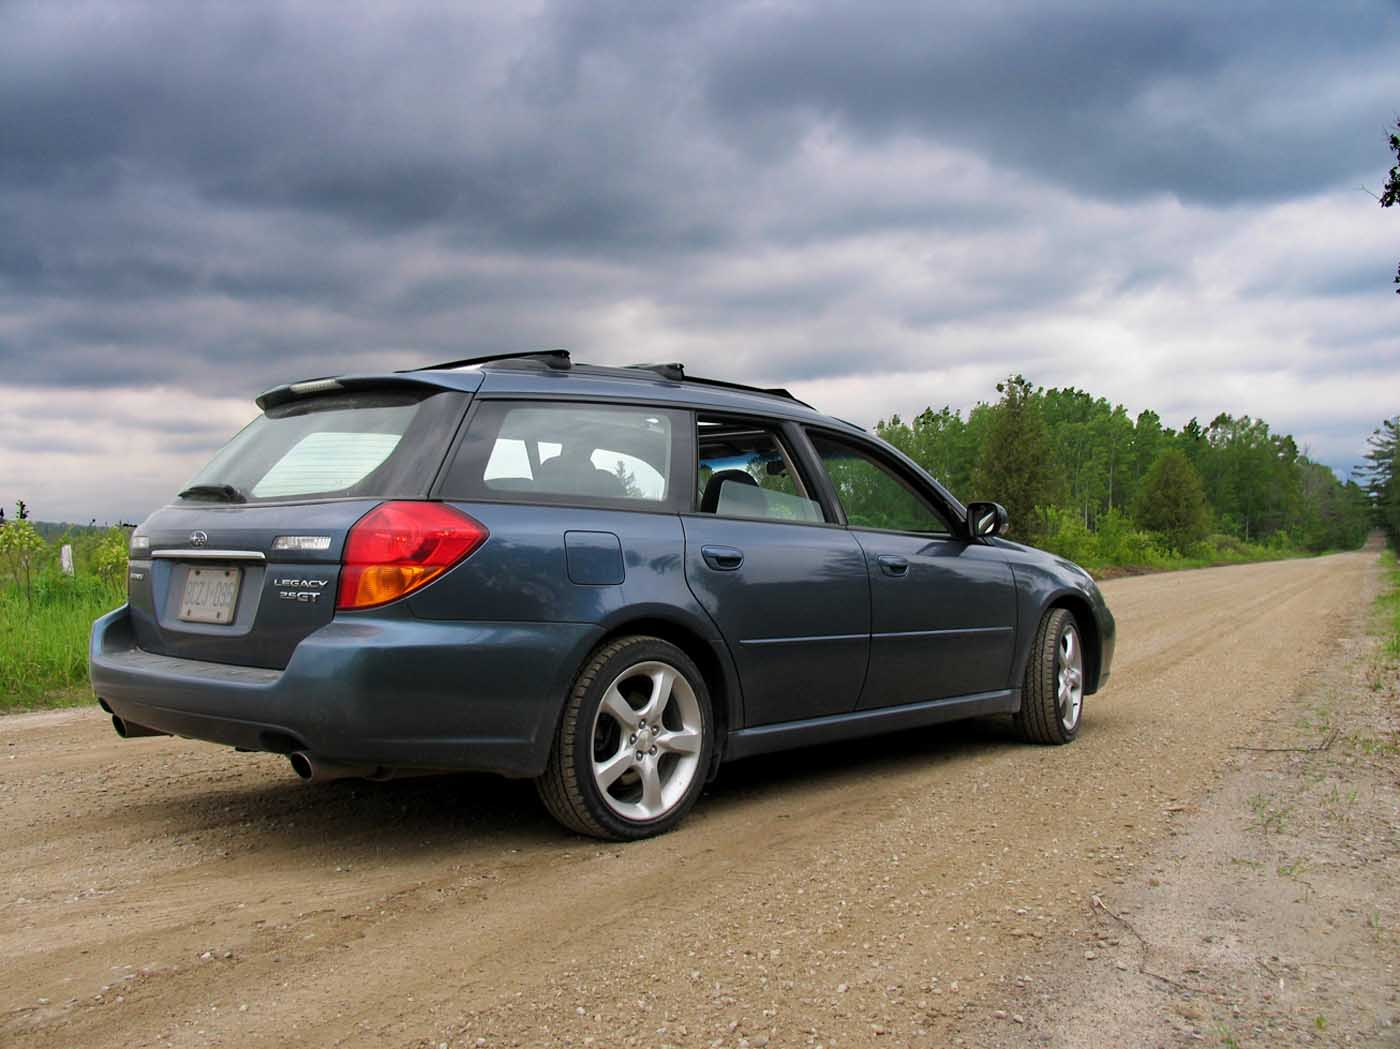 2005  Subaru Legacy GT LTD Wagon picture, mods, upgrades